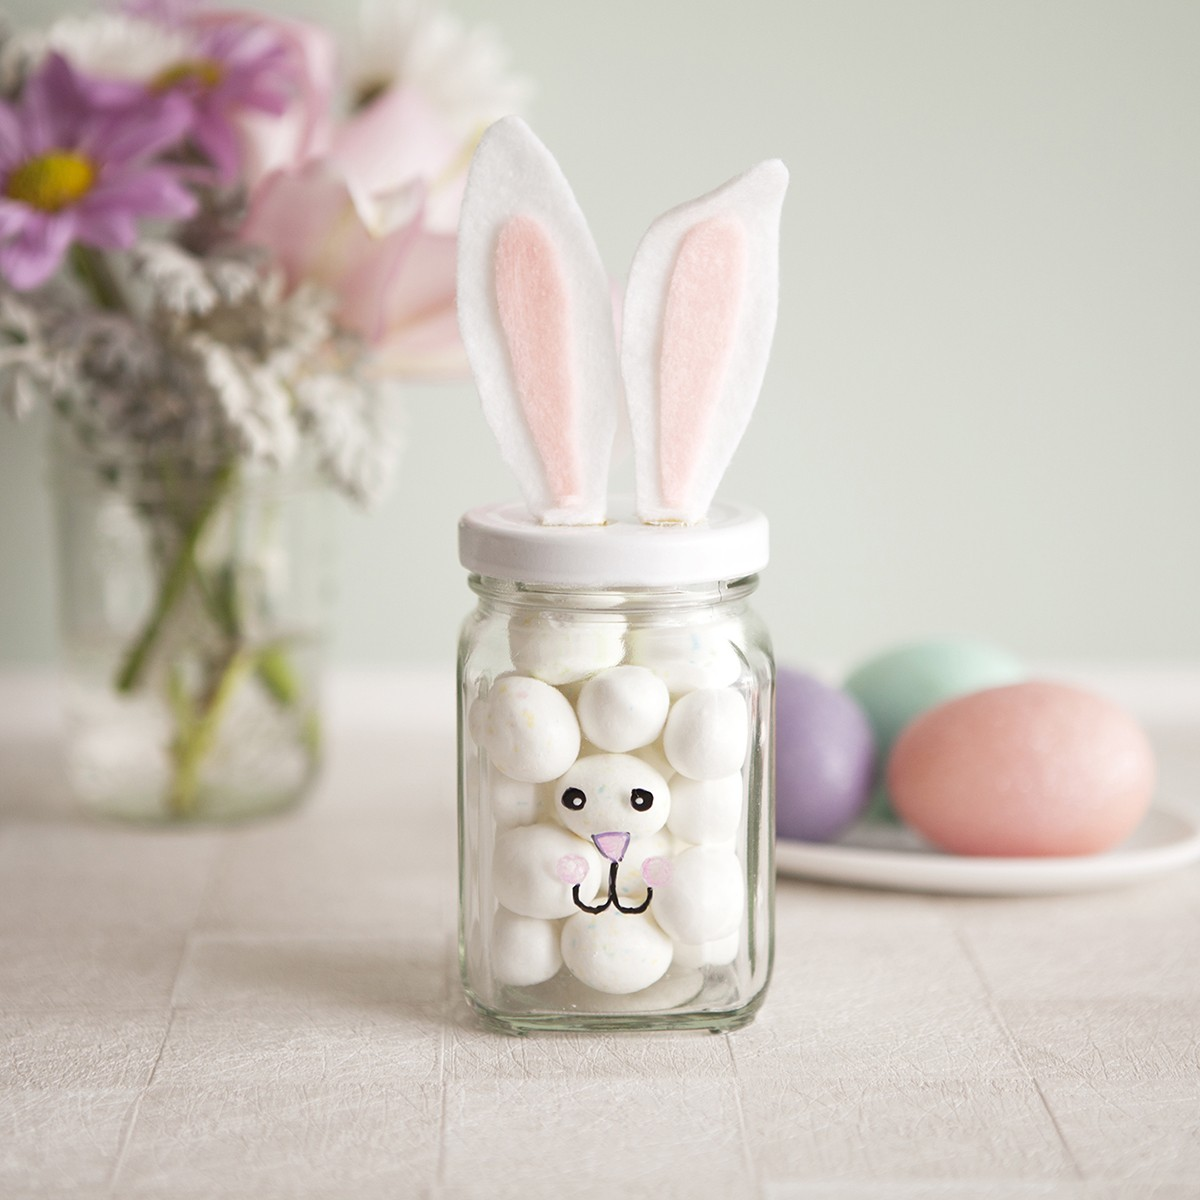 pastel easter bunny jars diy easter crafts for kids holiday gift ideas-f69397